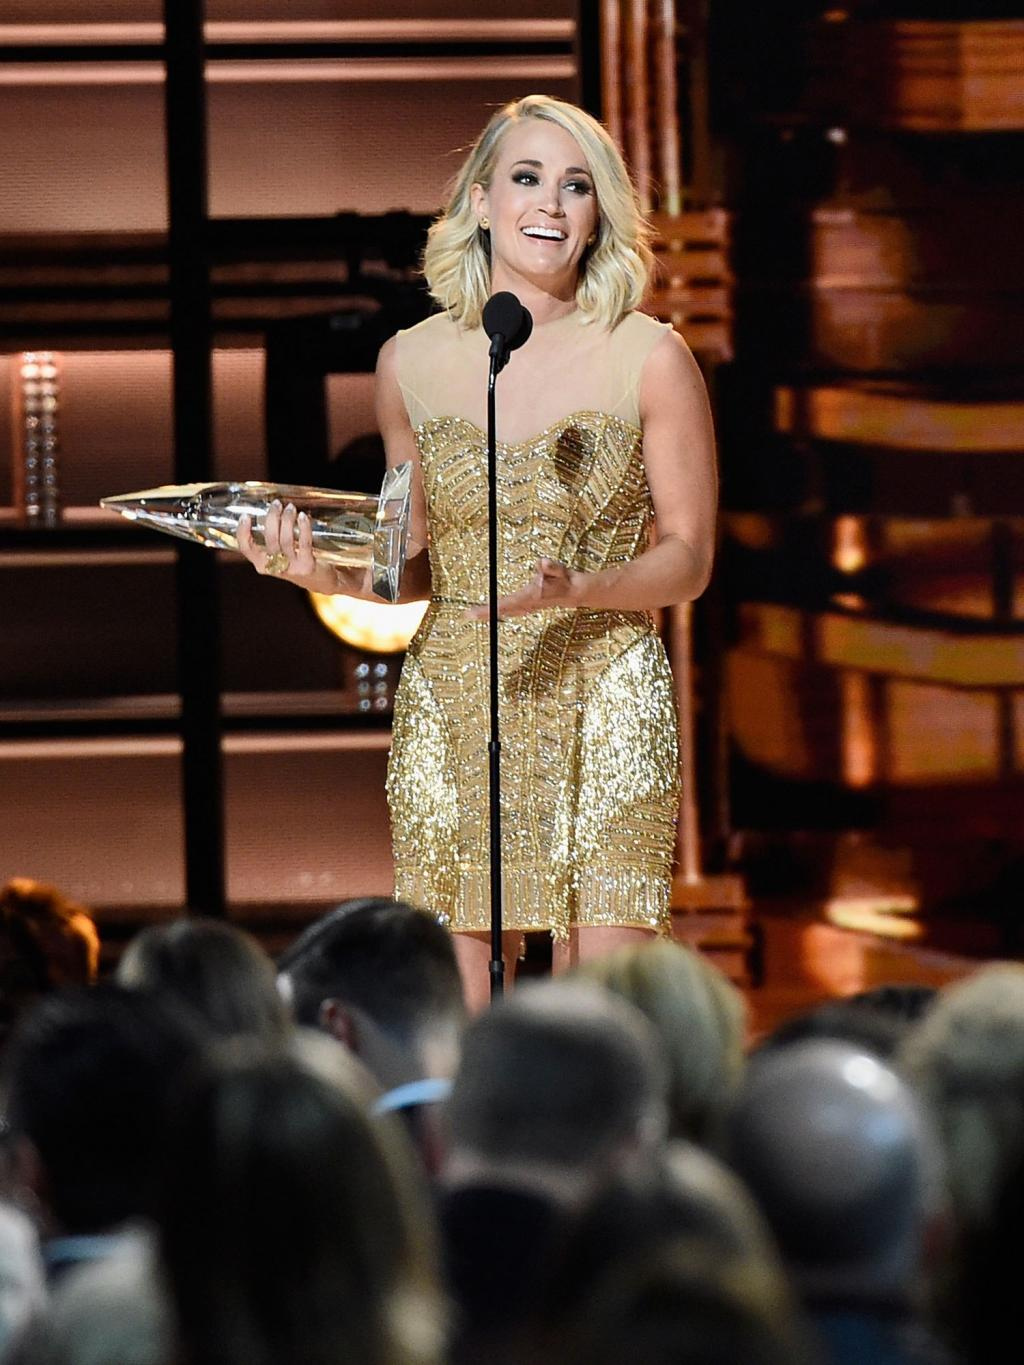 Carrie Underwood Nabs Female Vocalist of the Year at the CMAs: 'I've Just Become Suddenly Stupid'